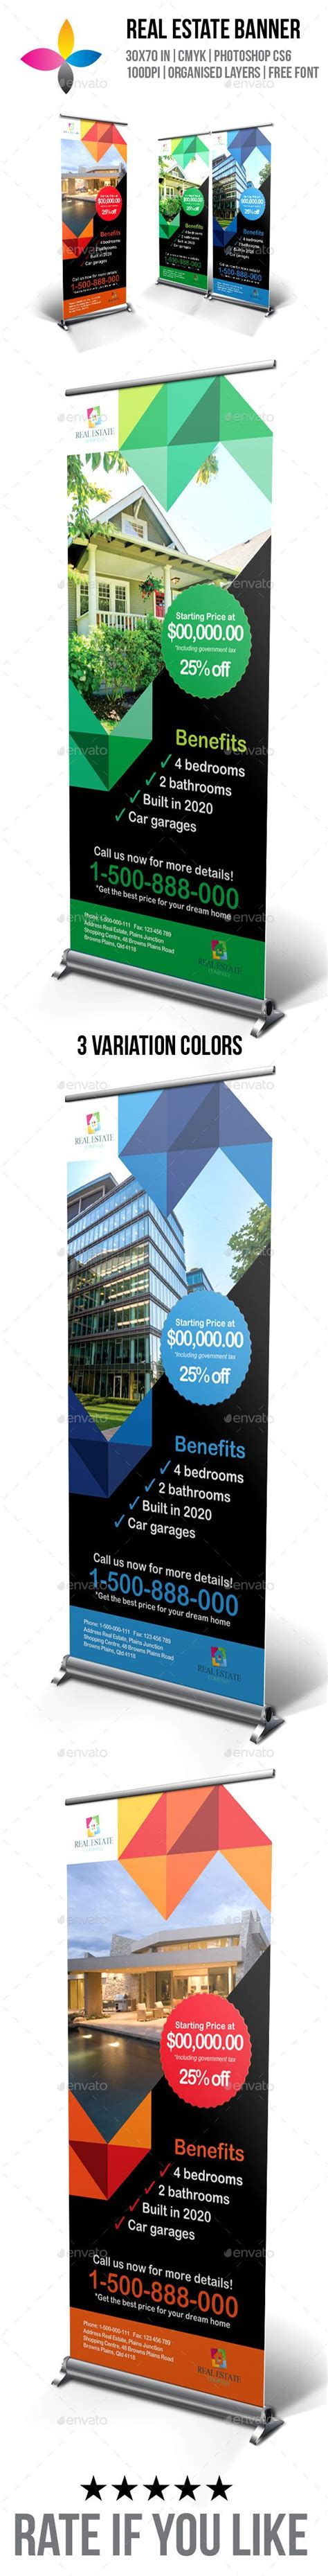 11 Best Images About Roll Up Banners On Pinterest Pull Up Maastricht And Overlays Real Estate Banners Template